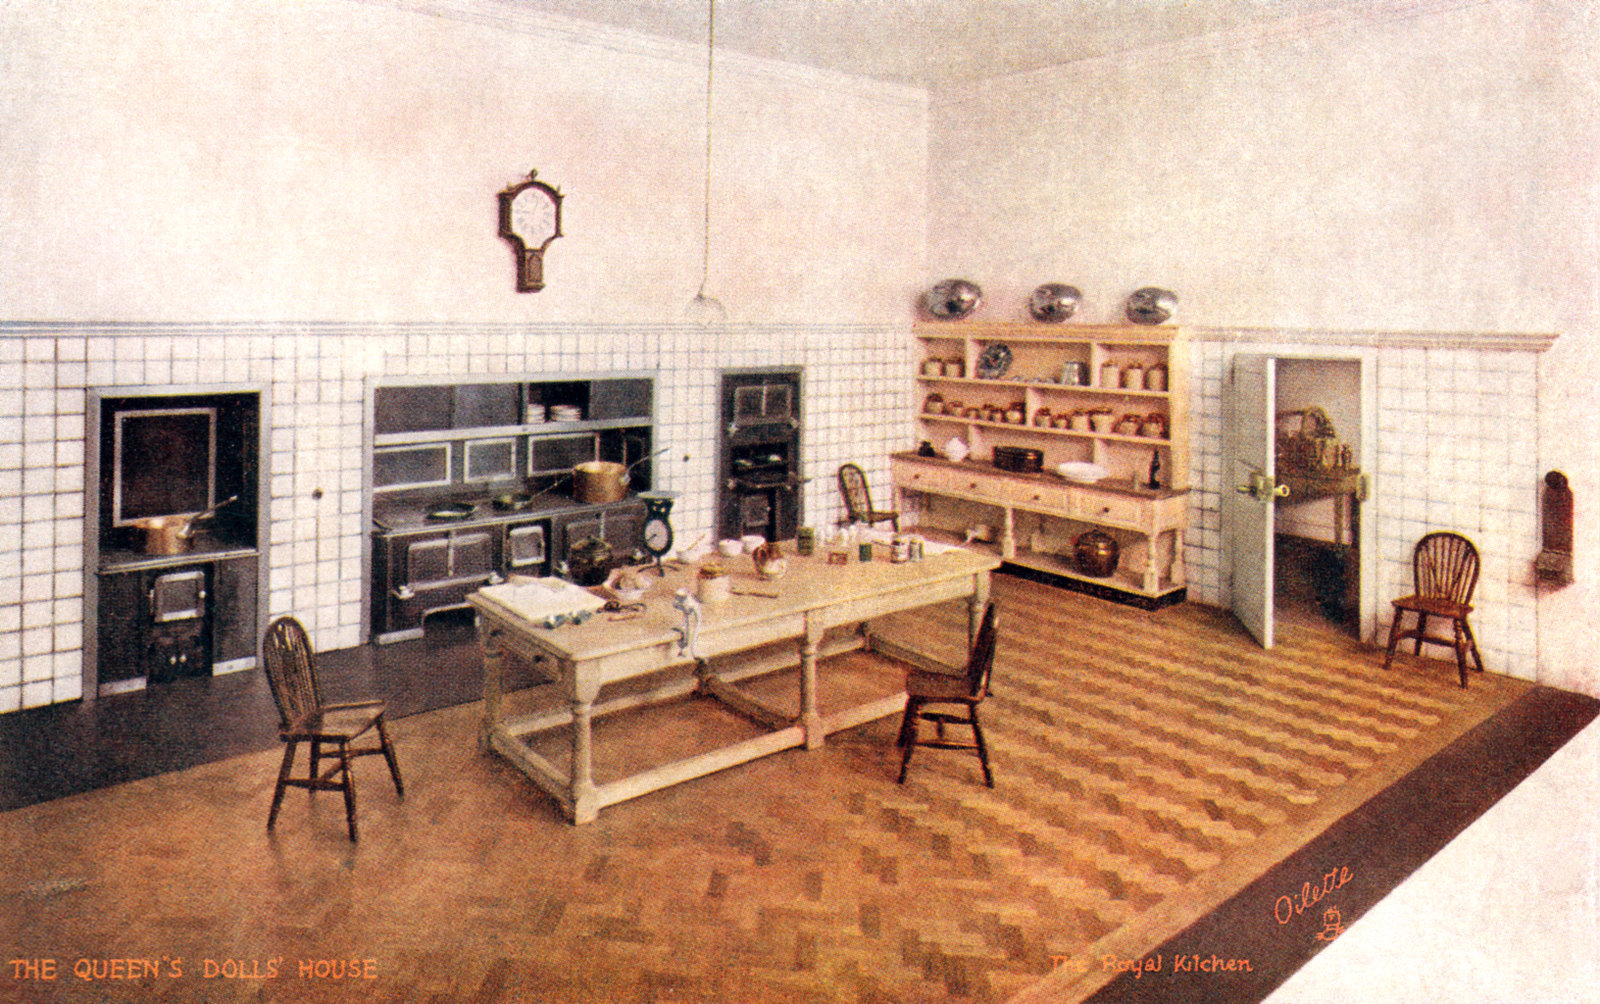 The Royal Kitchen The Queens Dolls House Postcards Raphael Tuck